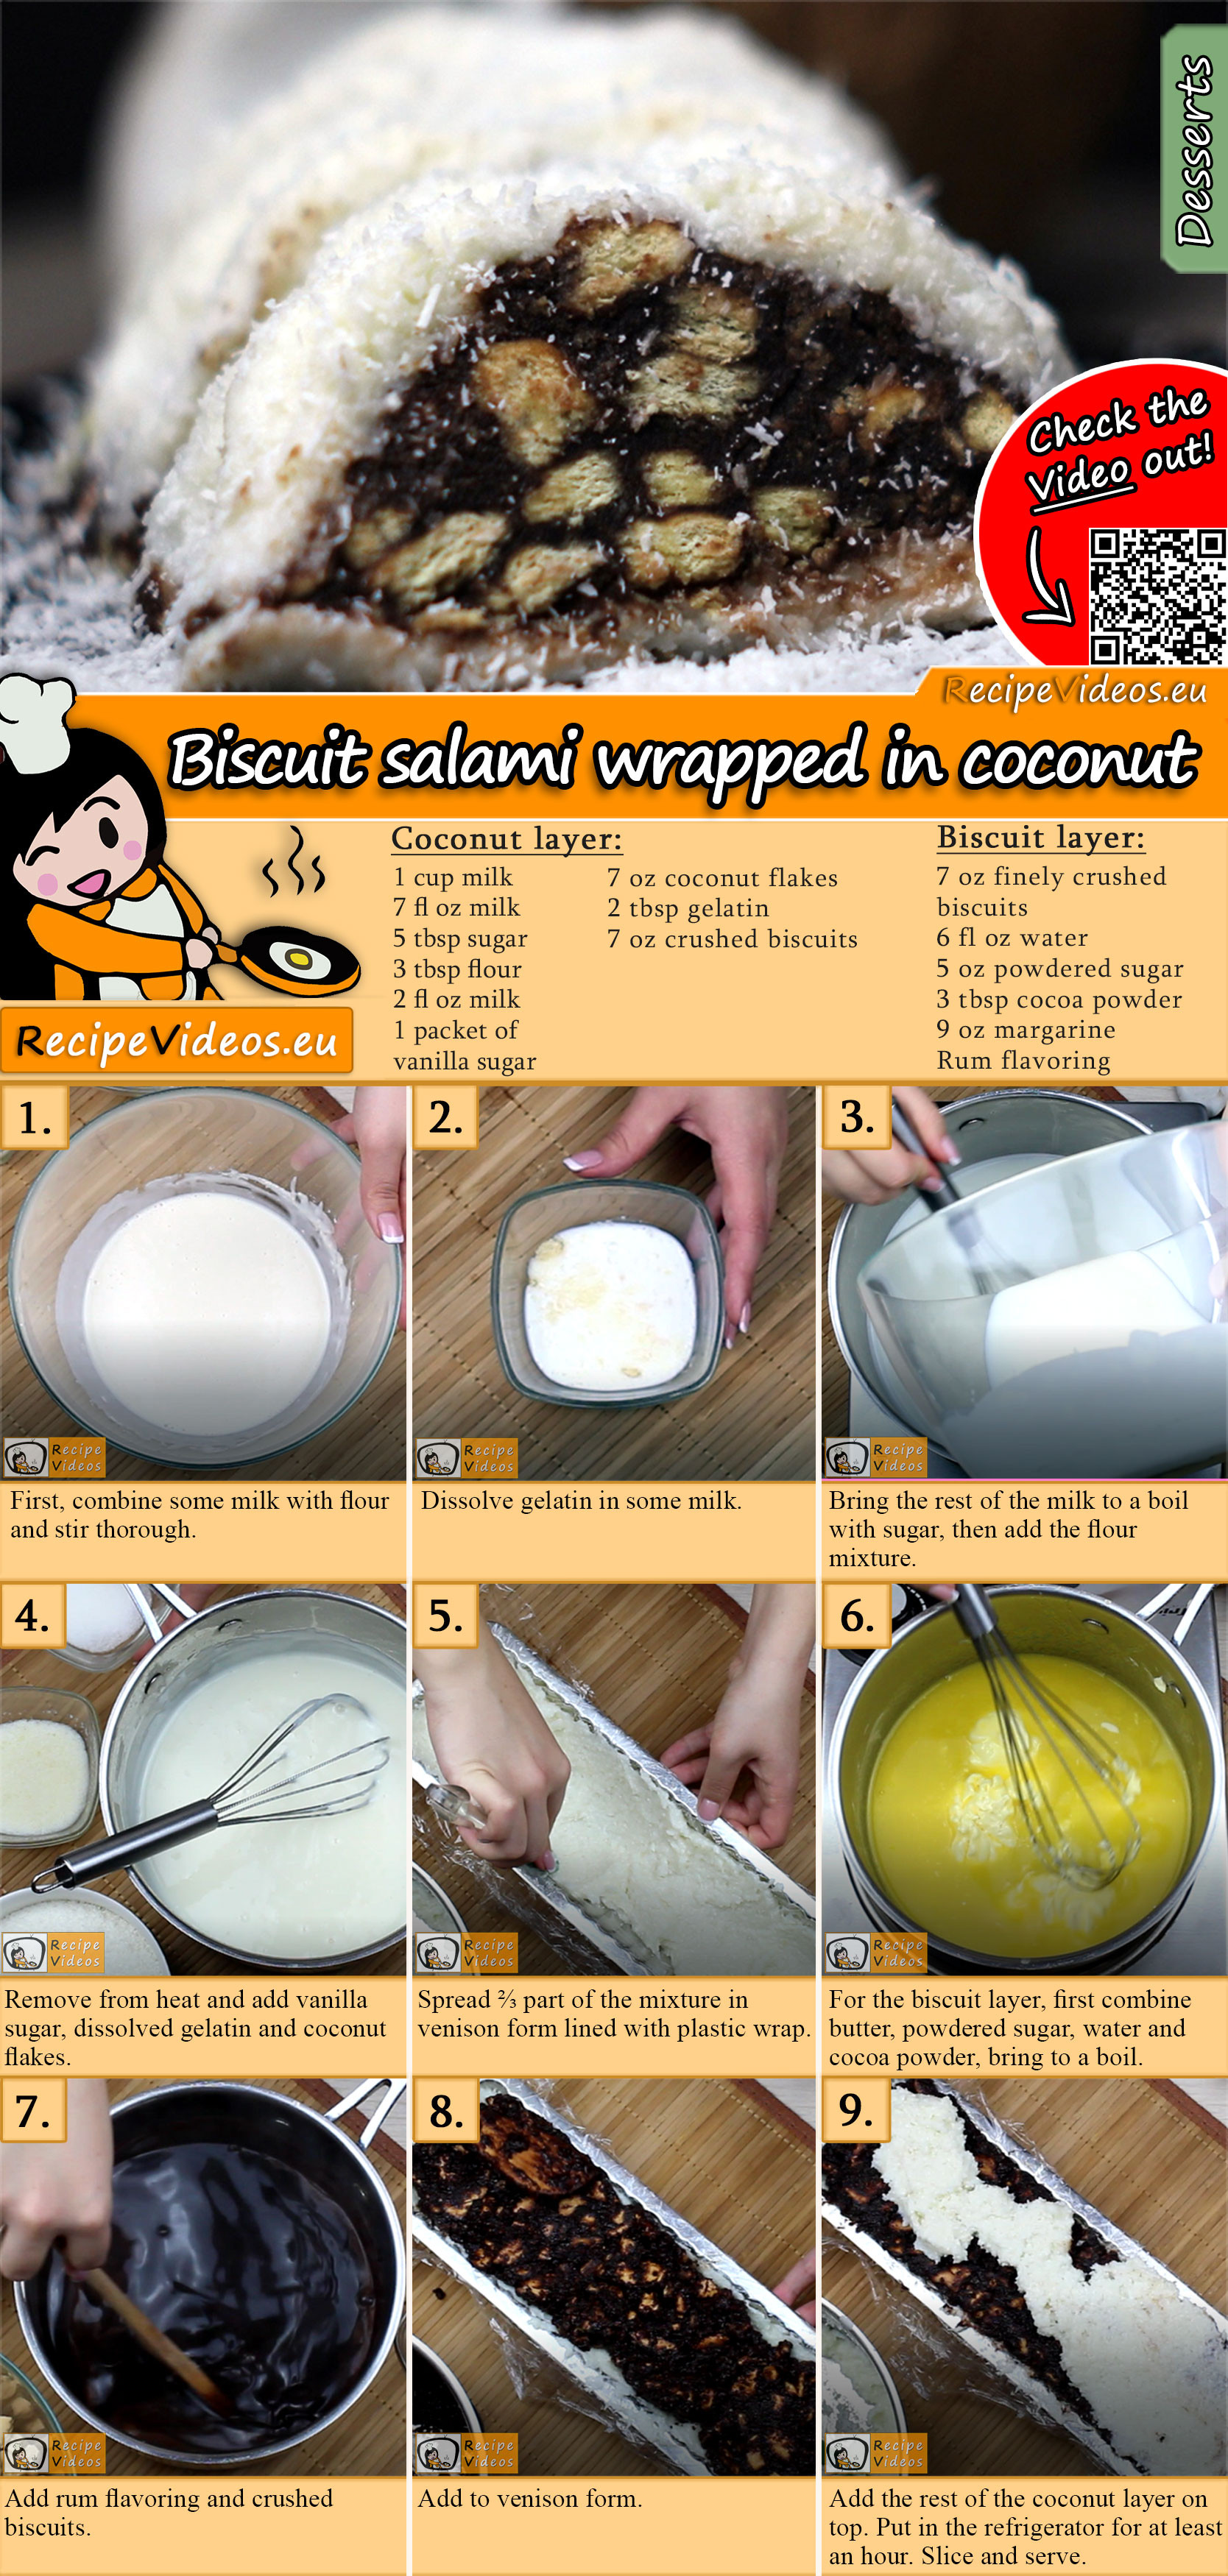 Biscuit salami wrapped in coconut recipe with video